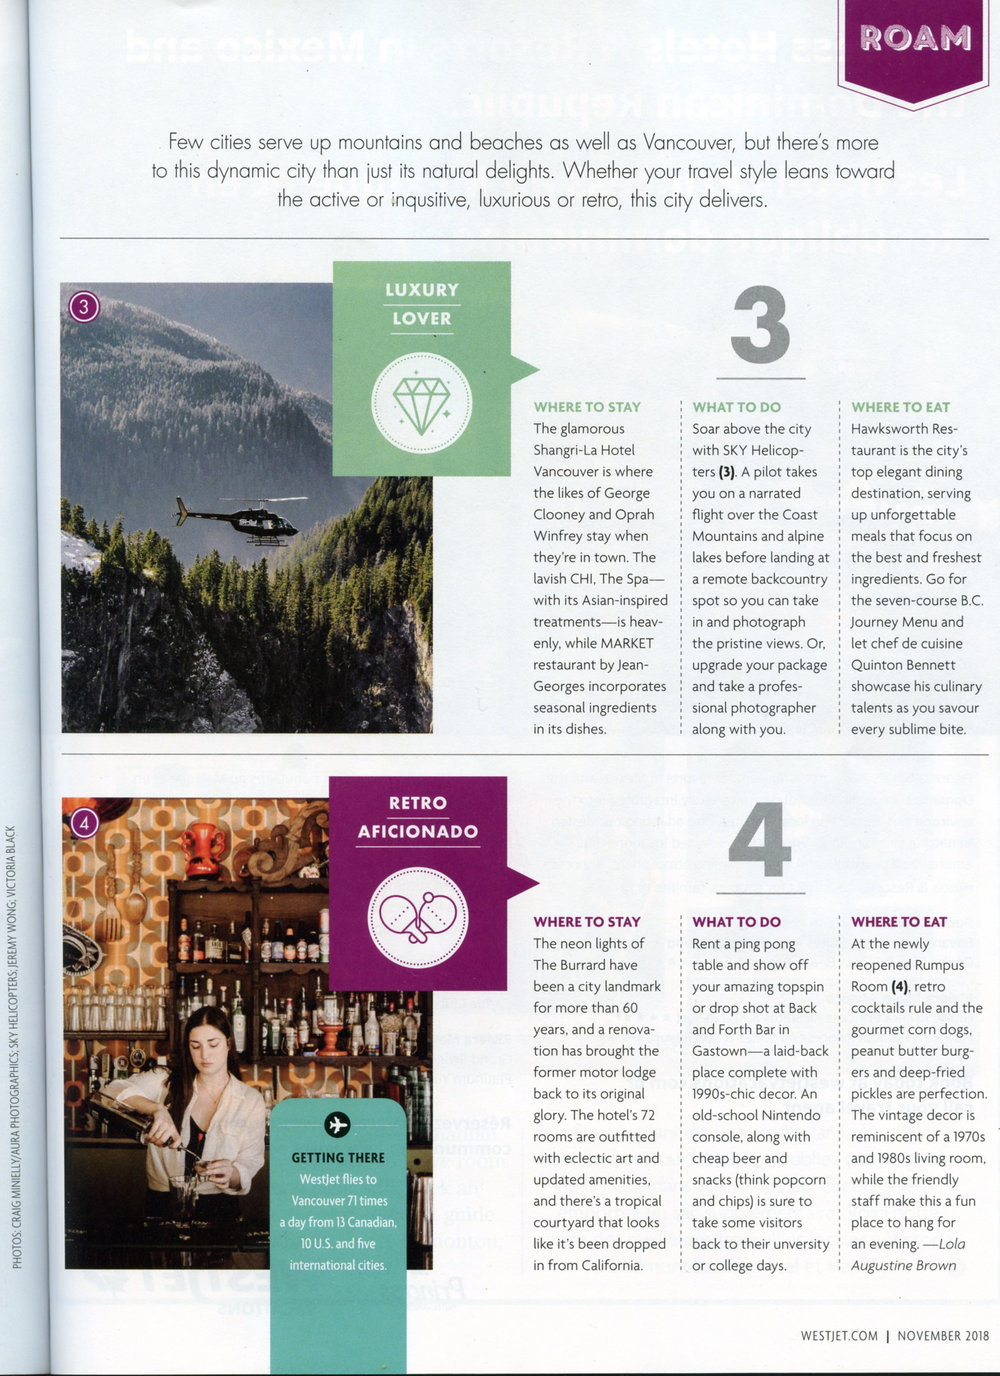 WestJet Magazine, Bottom Image - November 2018